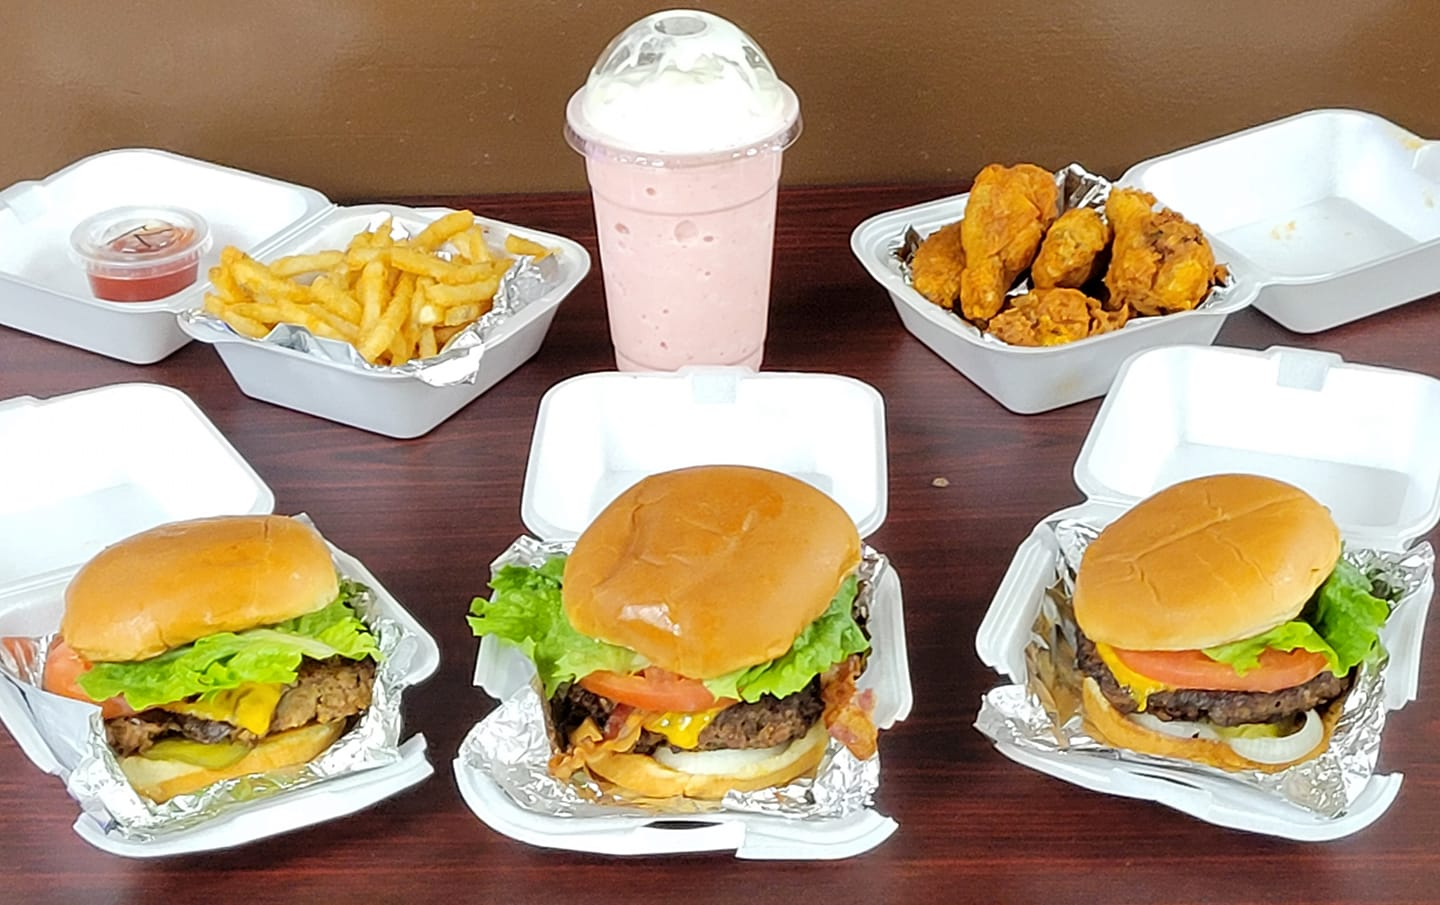 Three burgers, fries, chicken tenders, and a strawberry milkshake sit on a table at Burgers & Bites